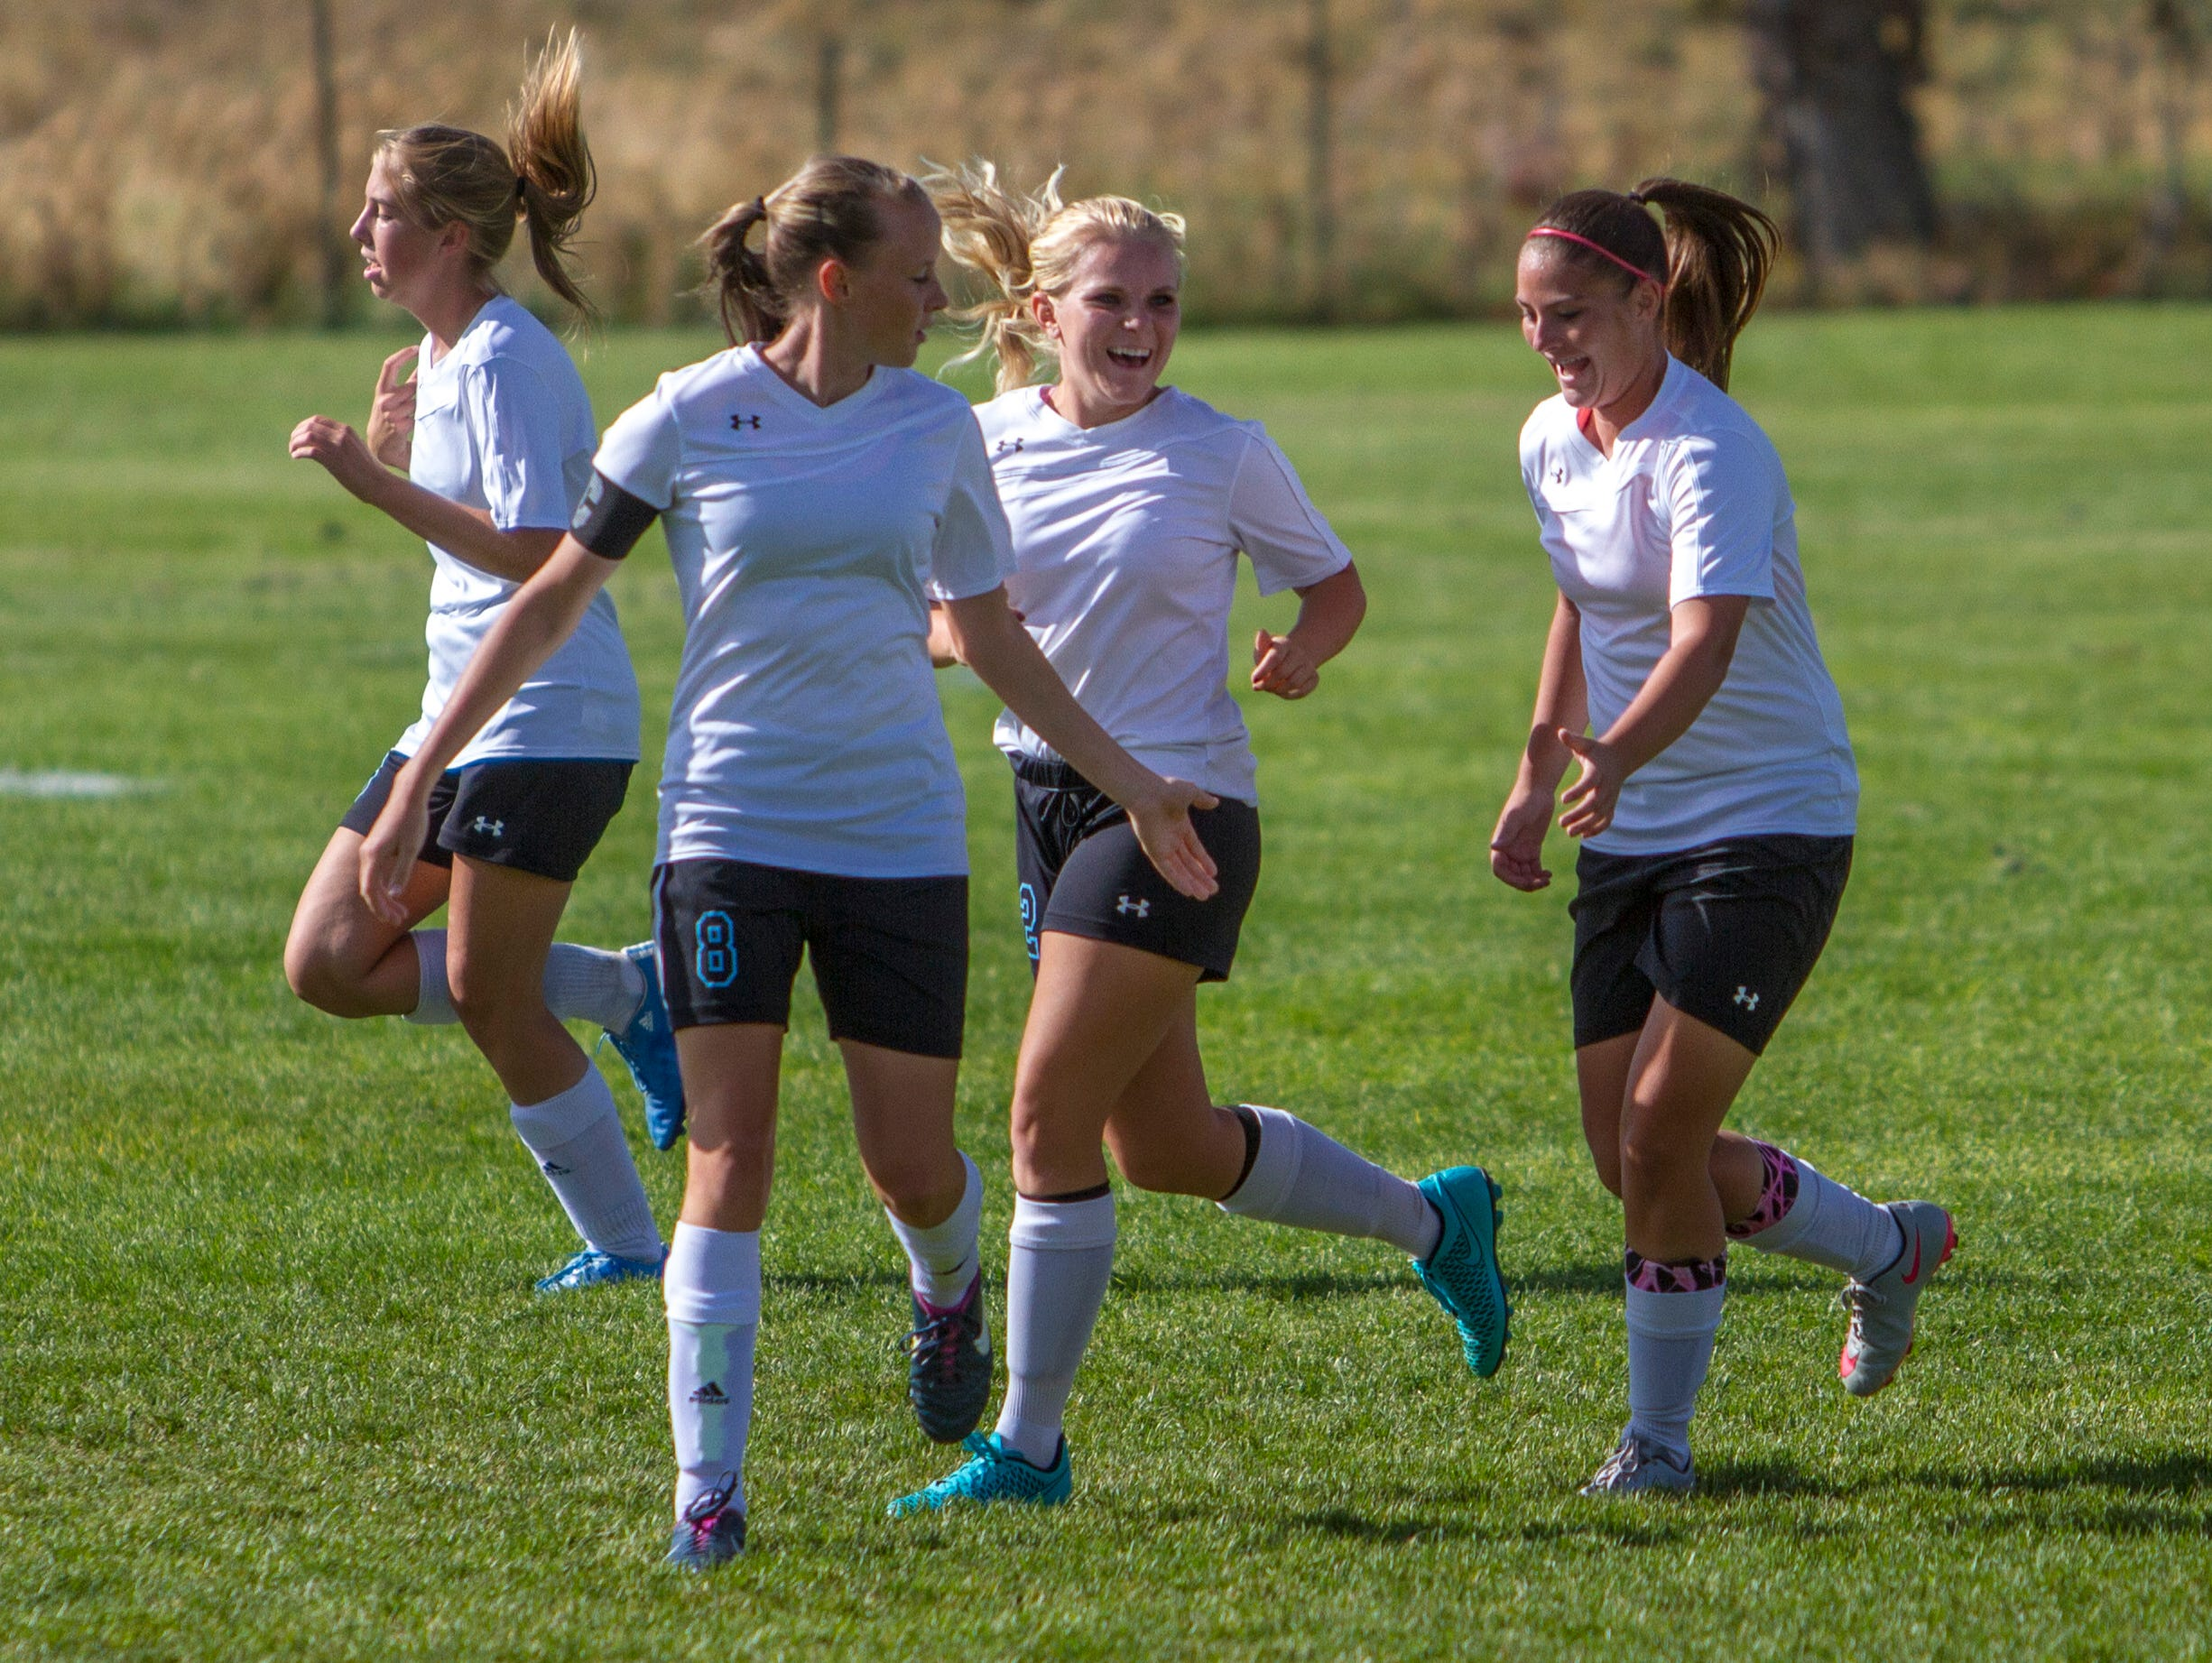 Canyon View's Ryane Caldwell celebrates with her teammates after scoring the Falcons first goal of the game against Carbon, Thursday, Oct. 8, 2015.